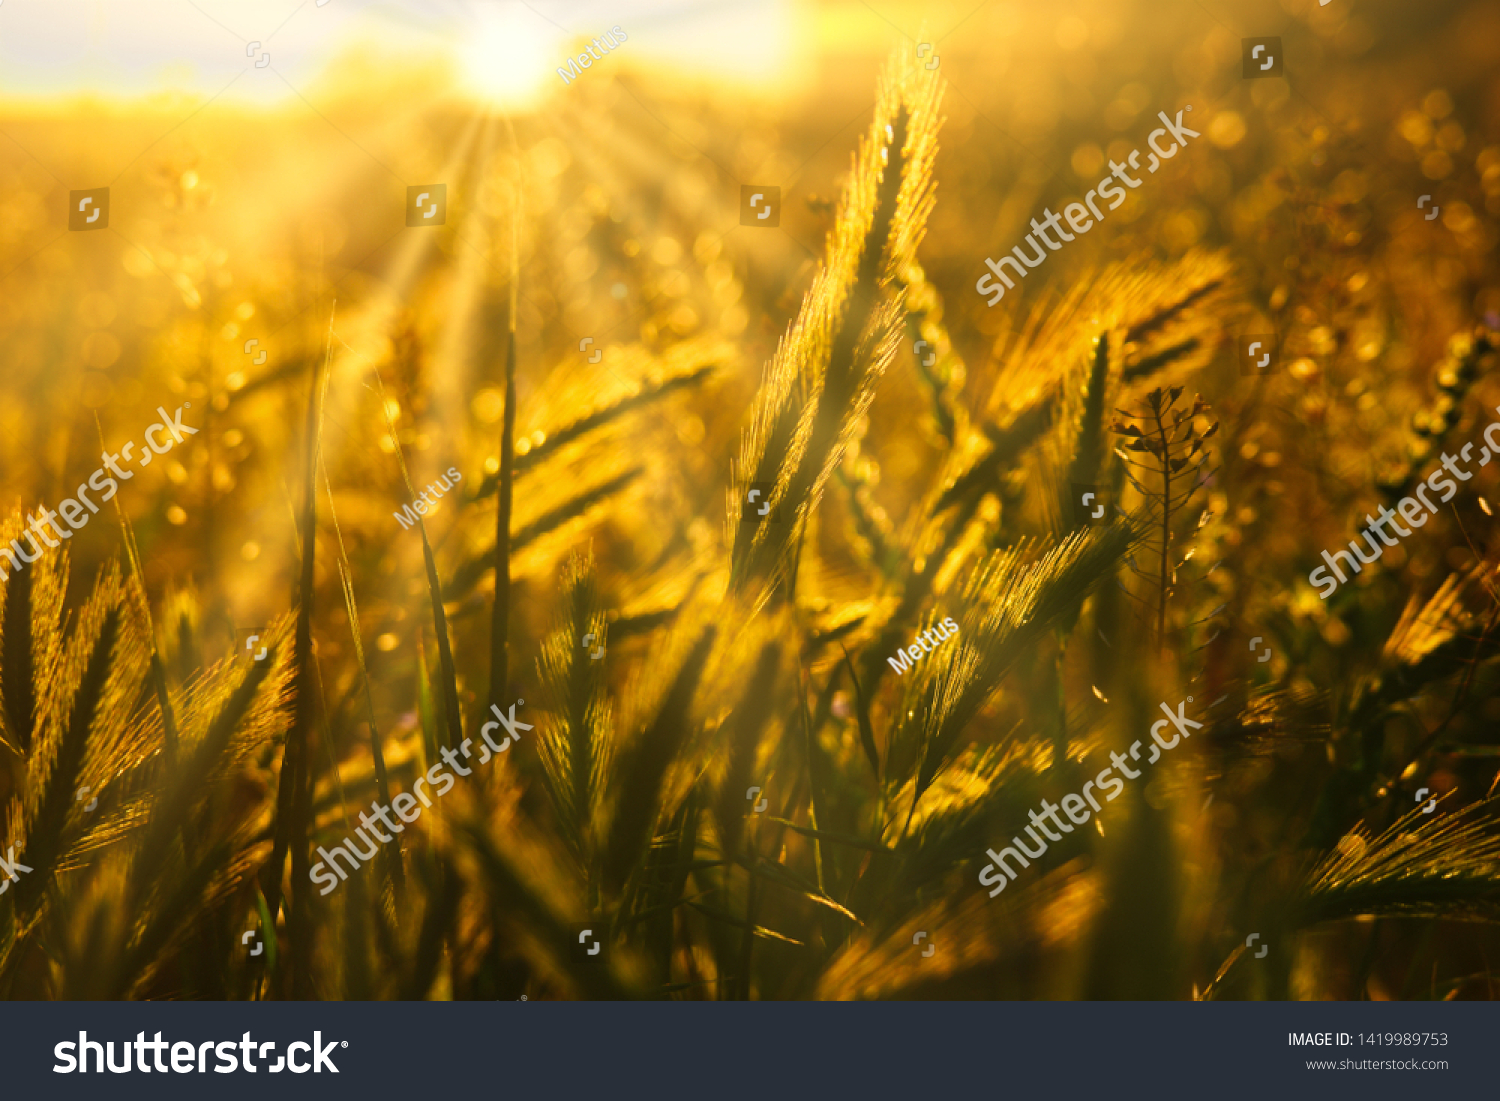 stock-photo-wild-grass-backlit-by-settin